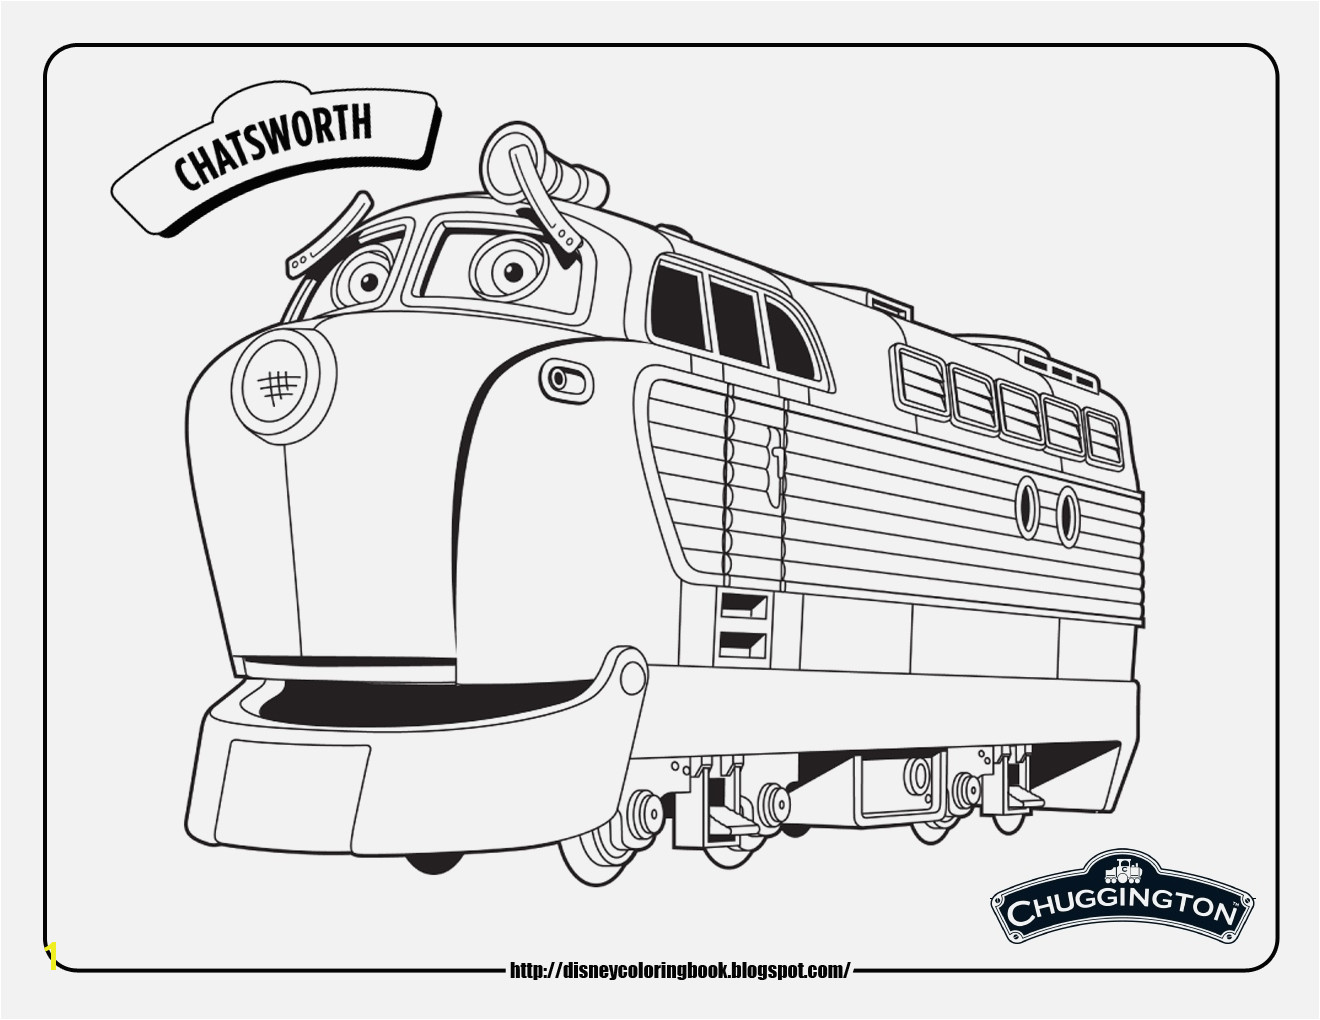 Thomas the Train Coloring Pages Best Easy Printable Chuggington Coloring Pages Free Printabl Pin Od Tracy